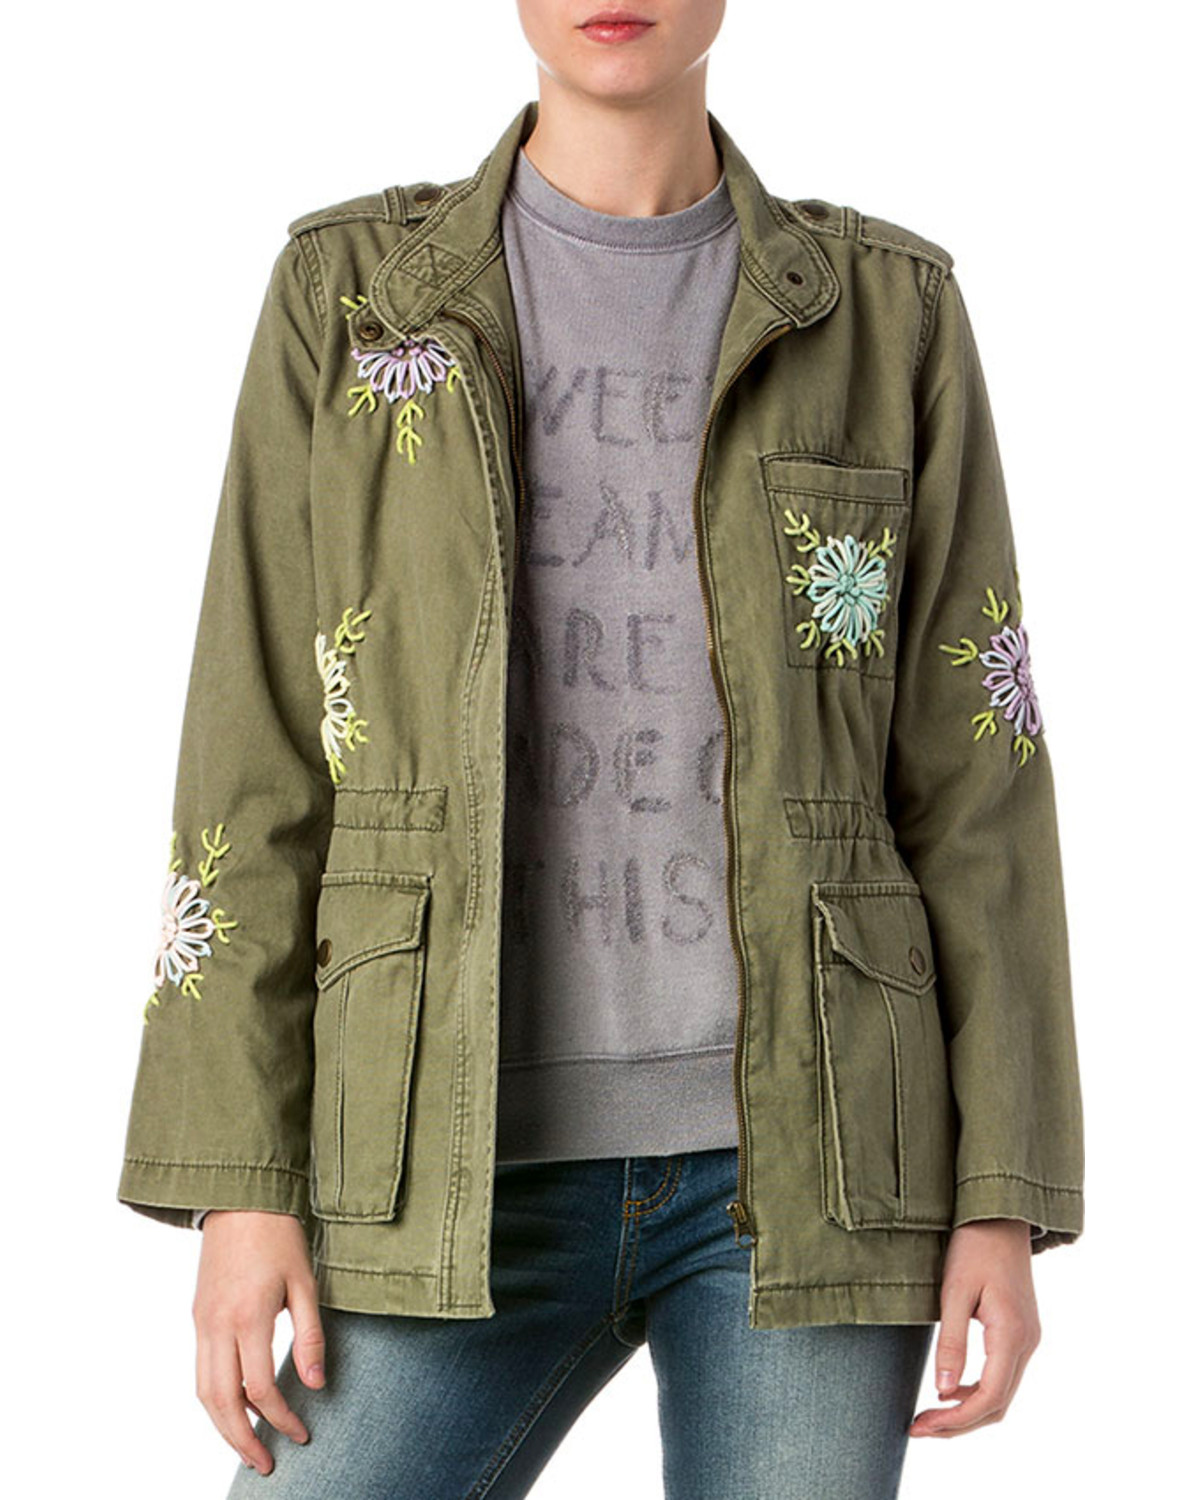 Olive green military jacket women